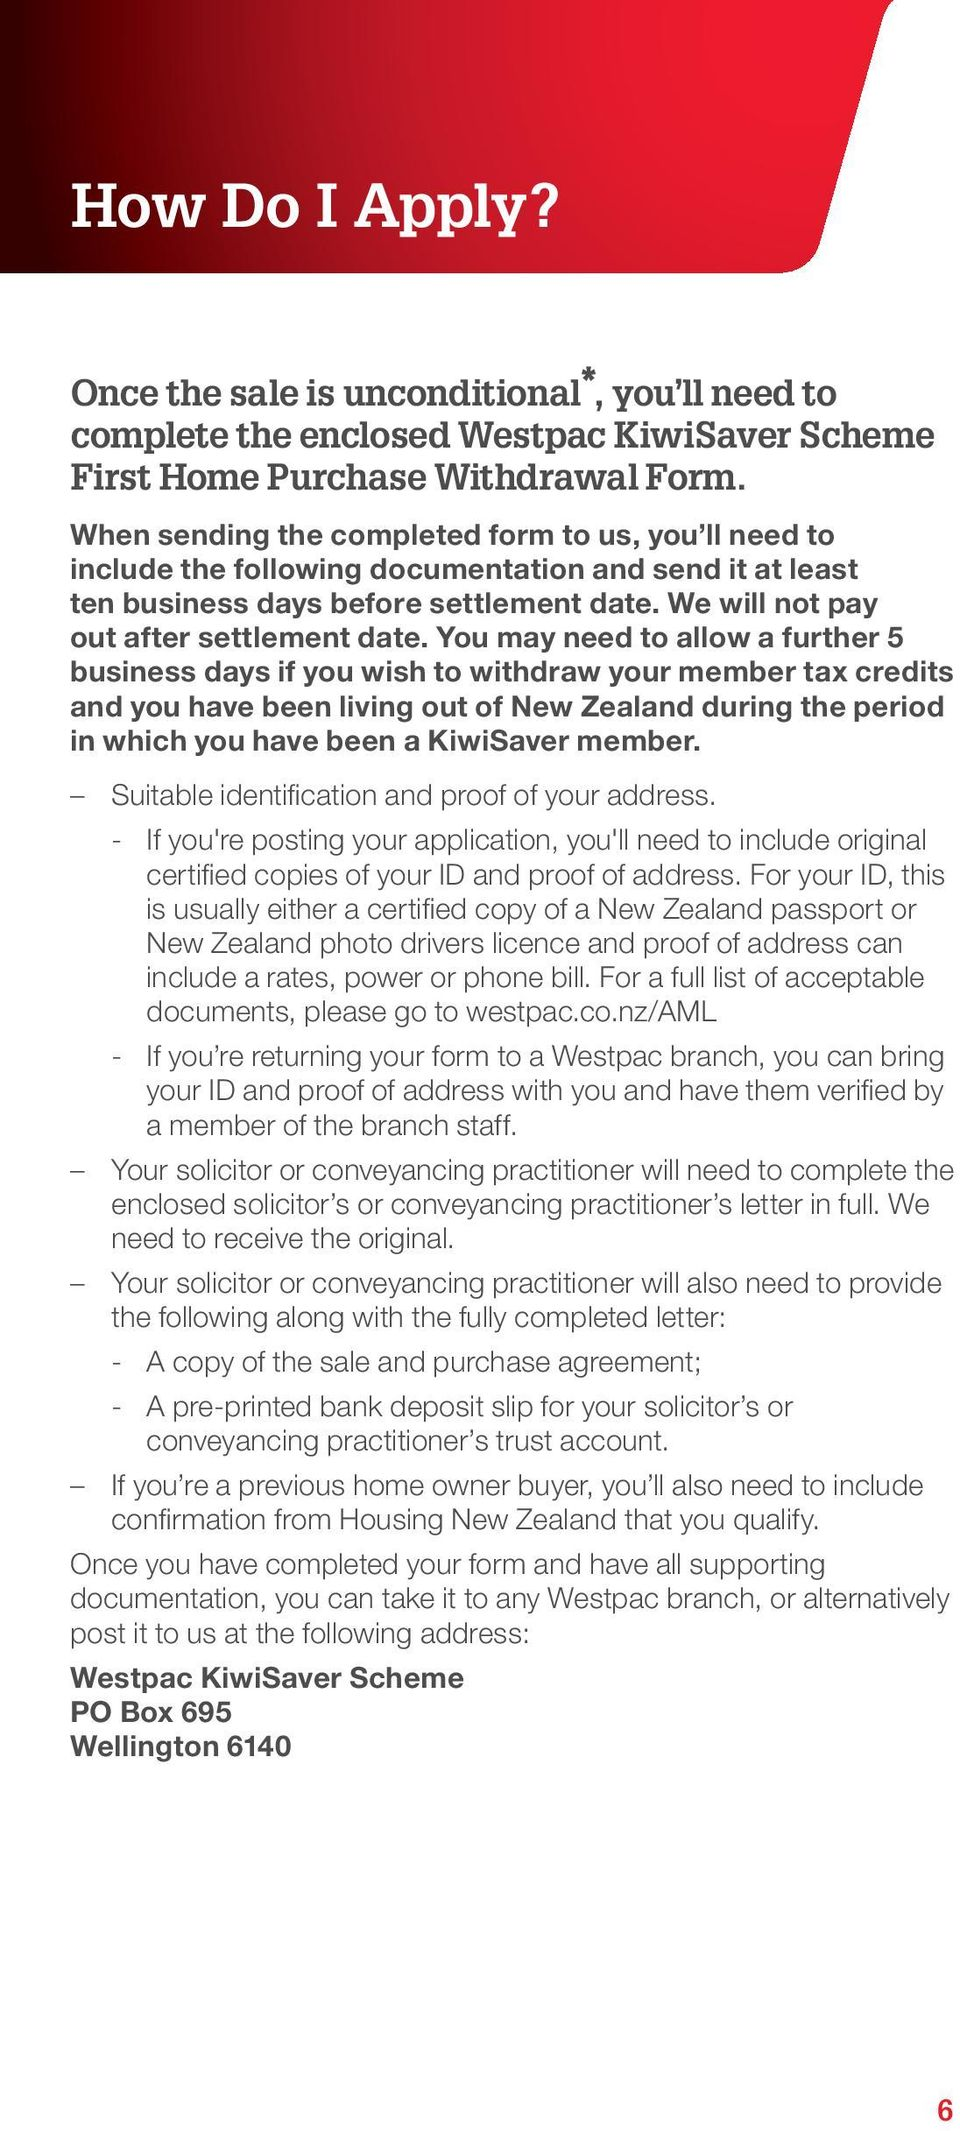 You may need to allow a further 5 business days if you wish to withdraw your member tax credits and you have been living out of New Zealand during the period in which you have been a KiwiSaver member.